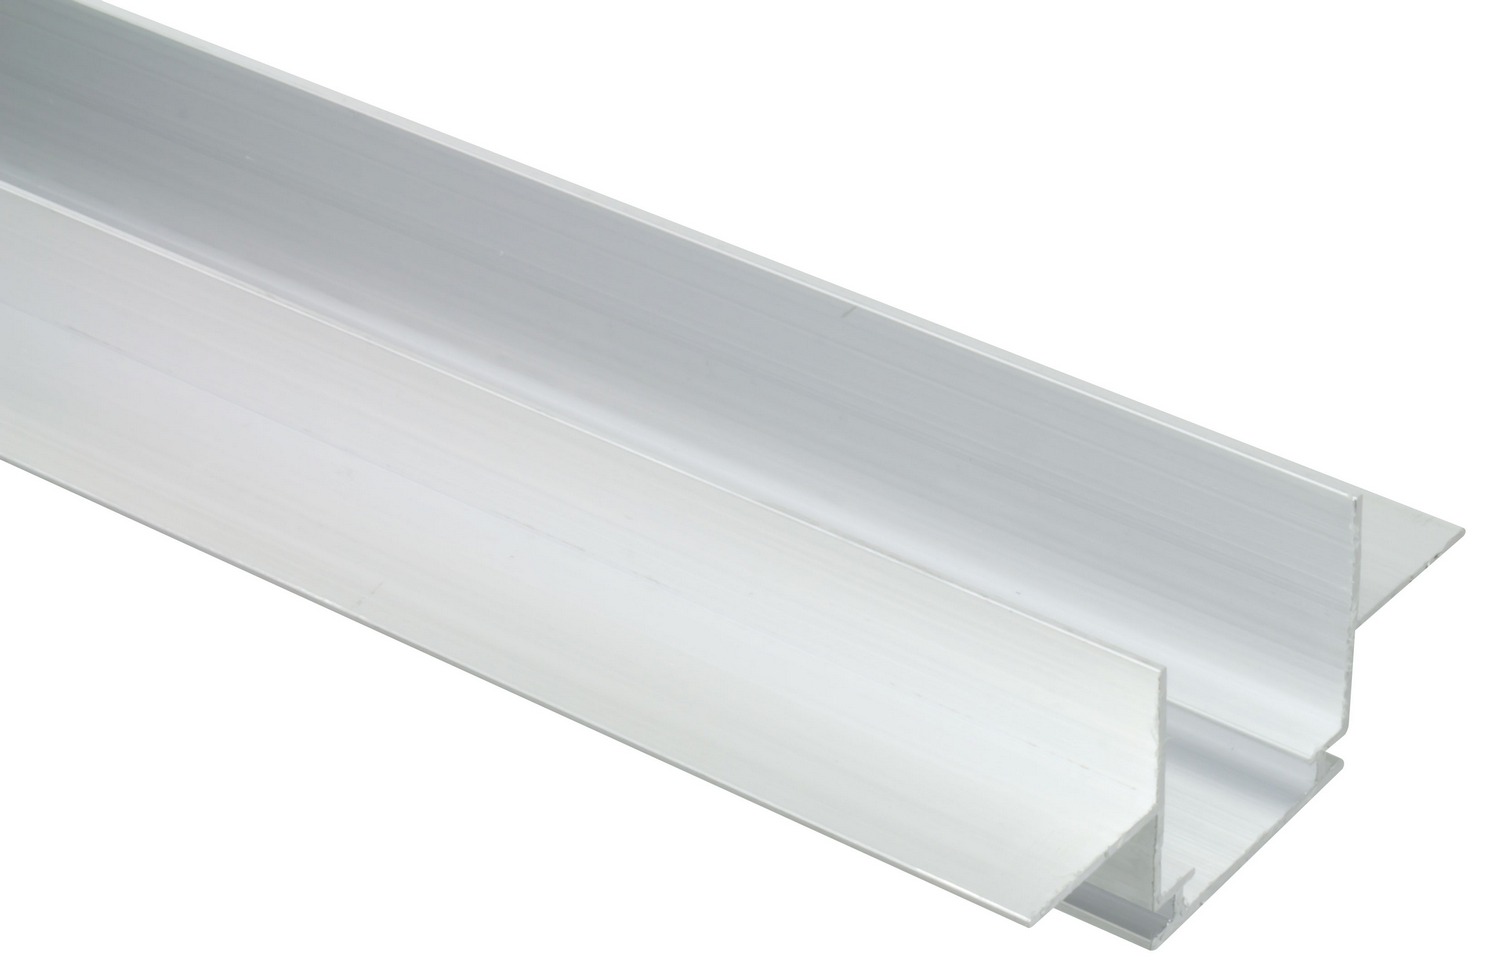 Drywall Housing For Slot Insert from the Extrusion collection by American Lighting PE D5 2M